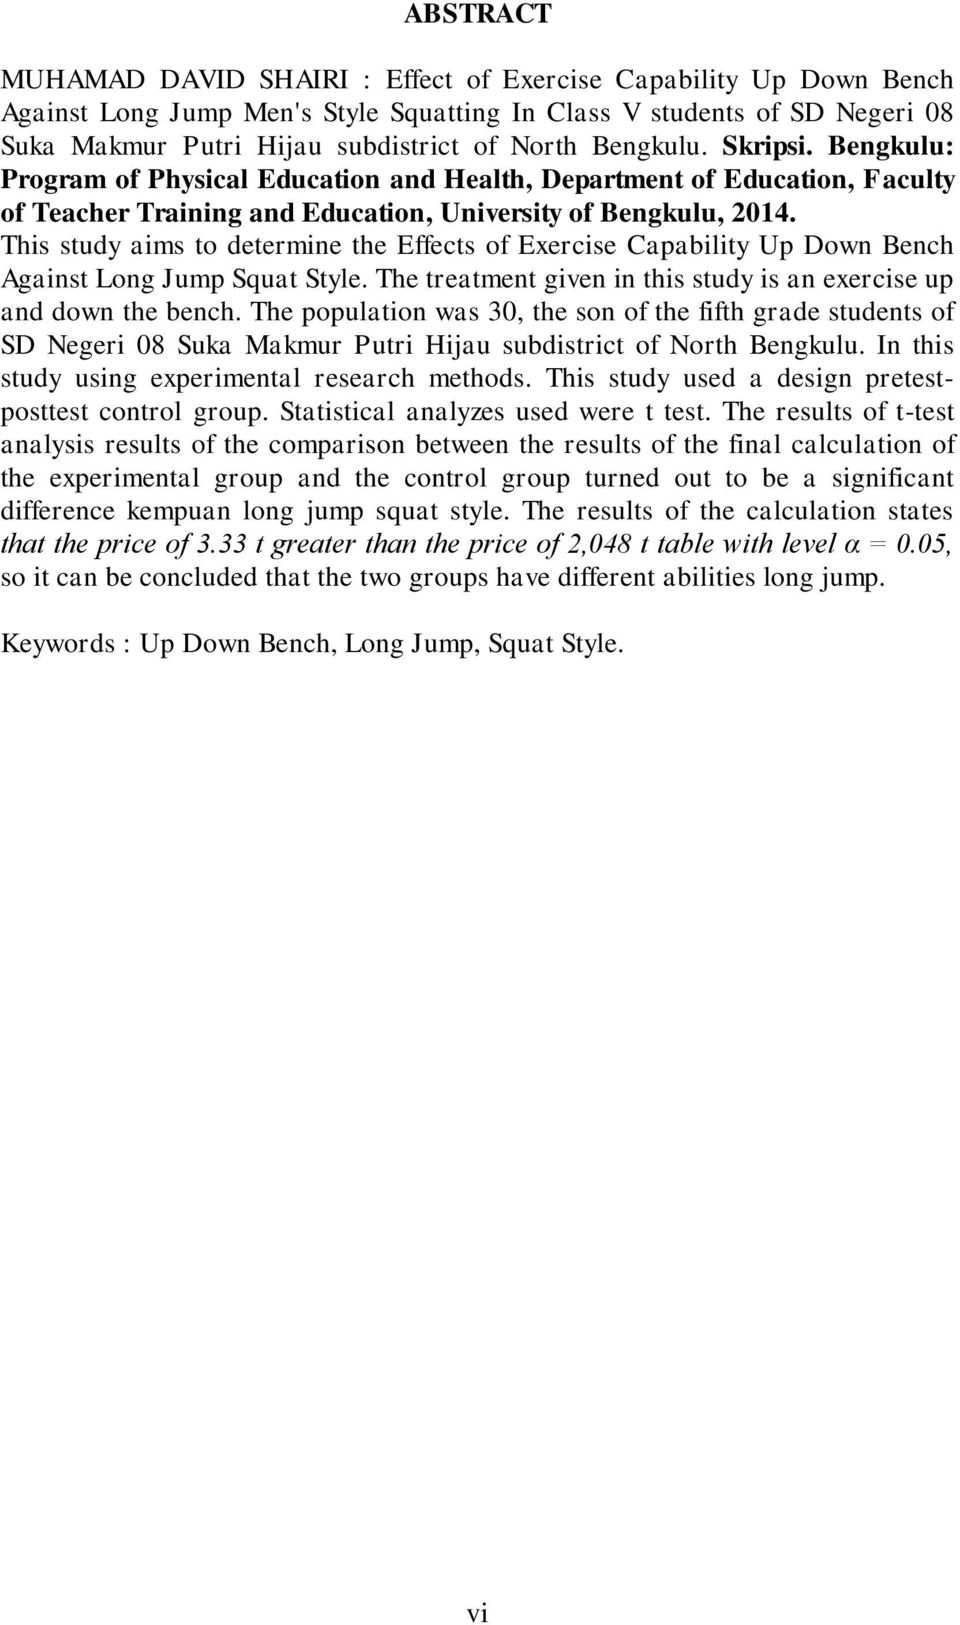 This study aims to determine the Effects of Exercise Capability Up Down Bench Against Long Jump Squat Style. The treatment given in this study is an exercise up and down the bench.